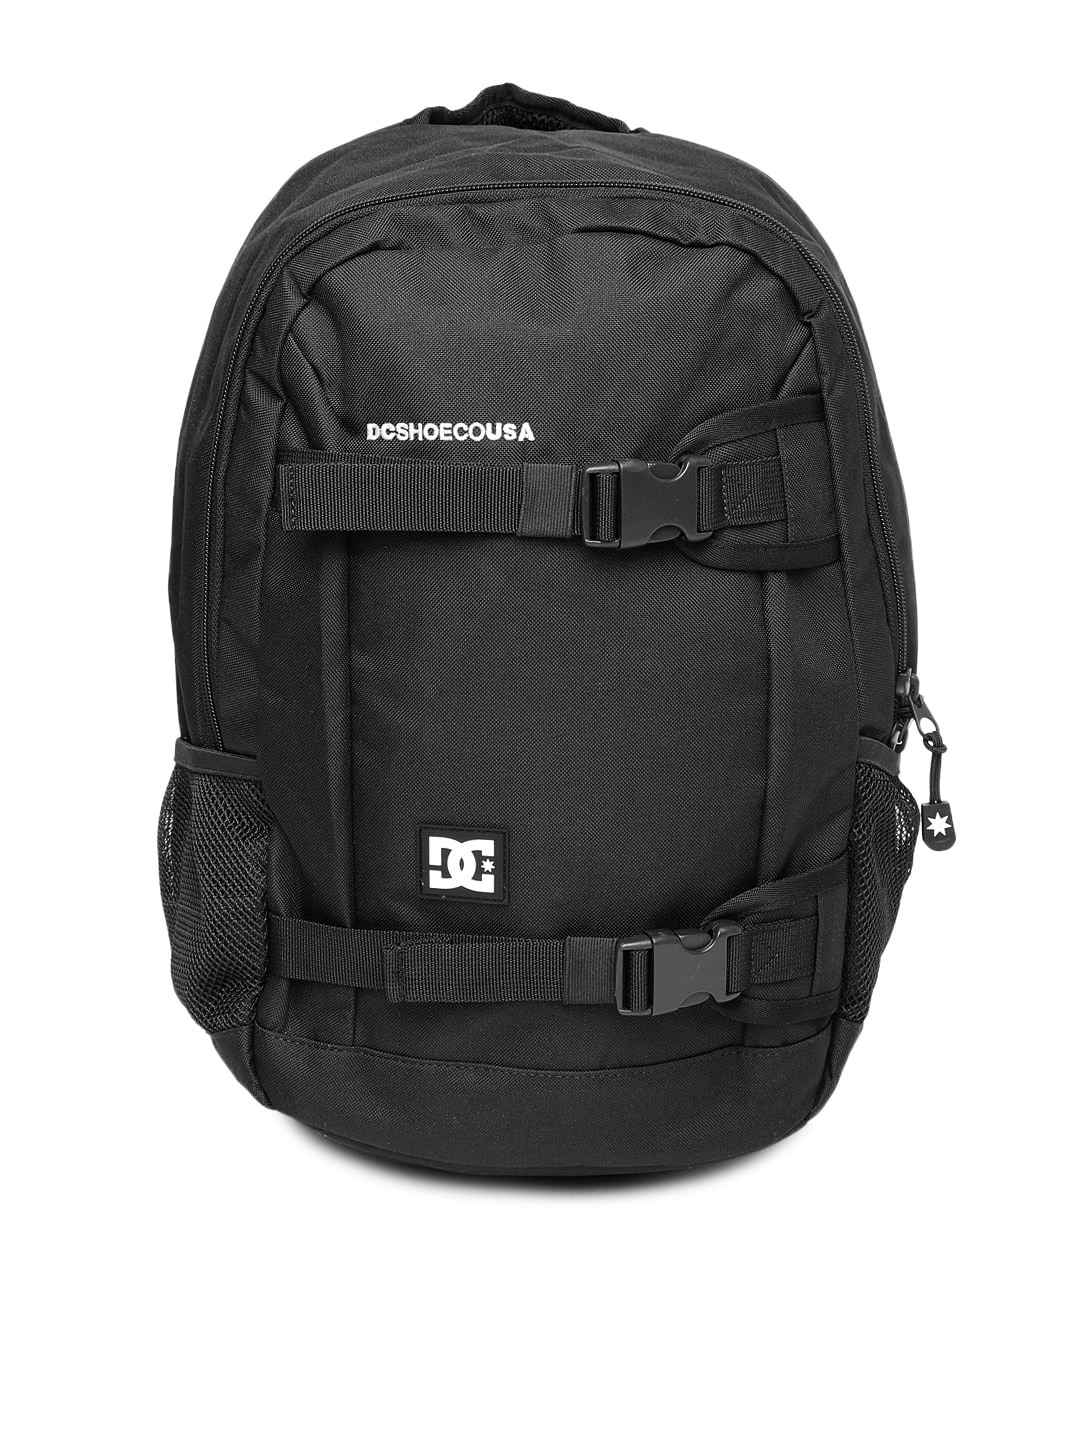 fed1d1323a4 dc backpacks - Price list in India | priceiq.in